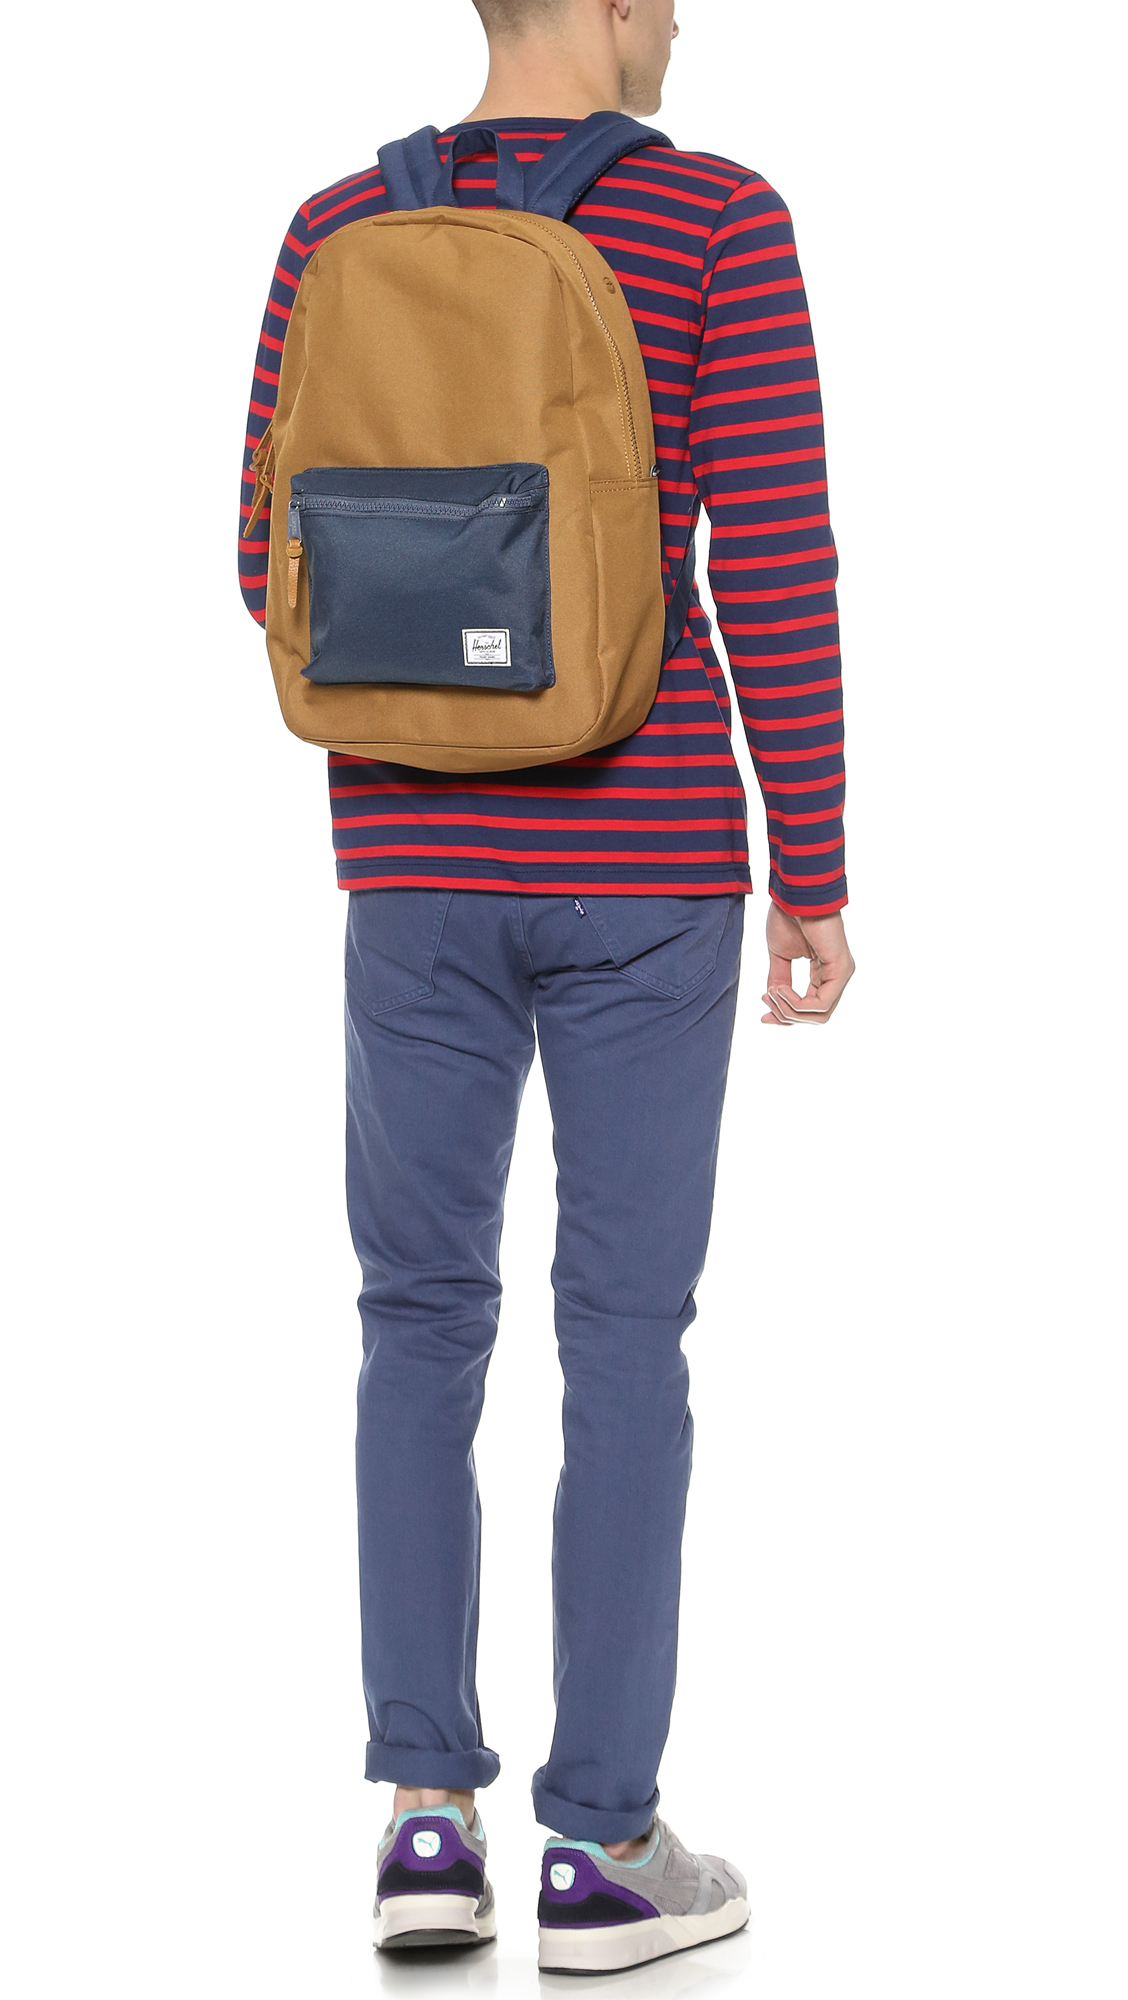 Men Settlement Brown Backpack Co for Herschel in Supply Lyst wq8xazO4t